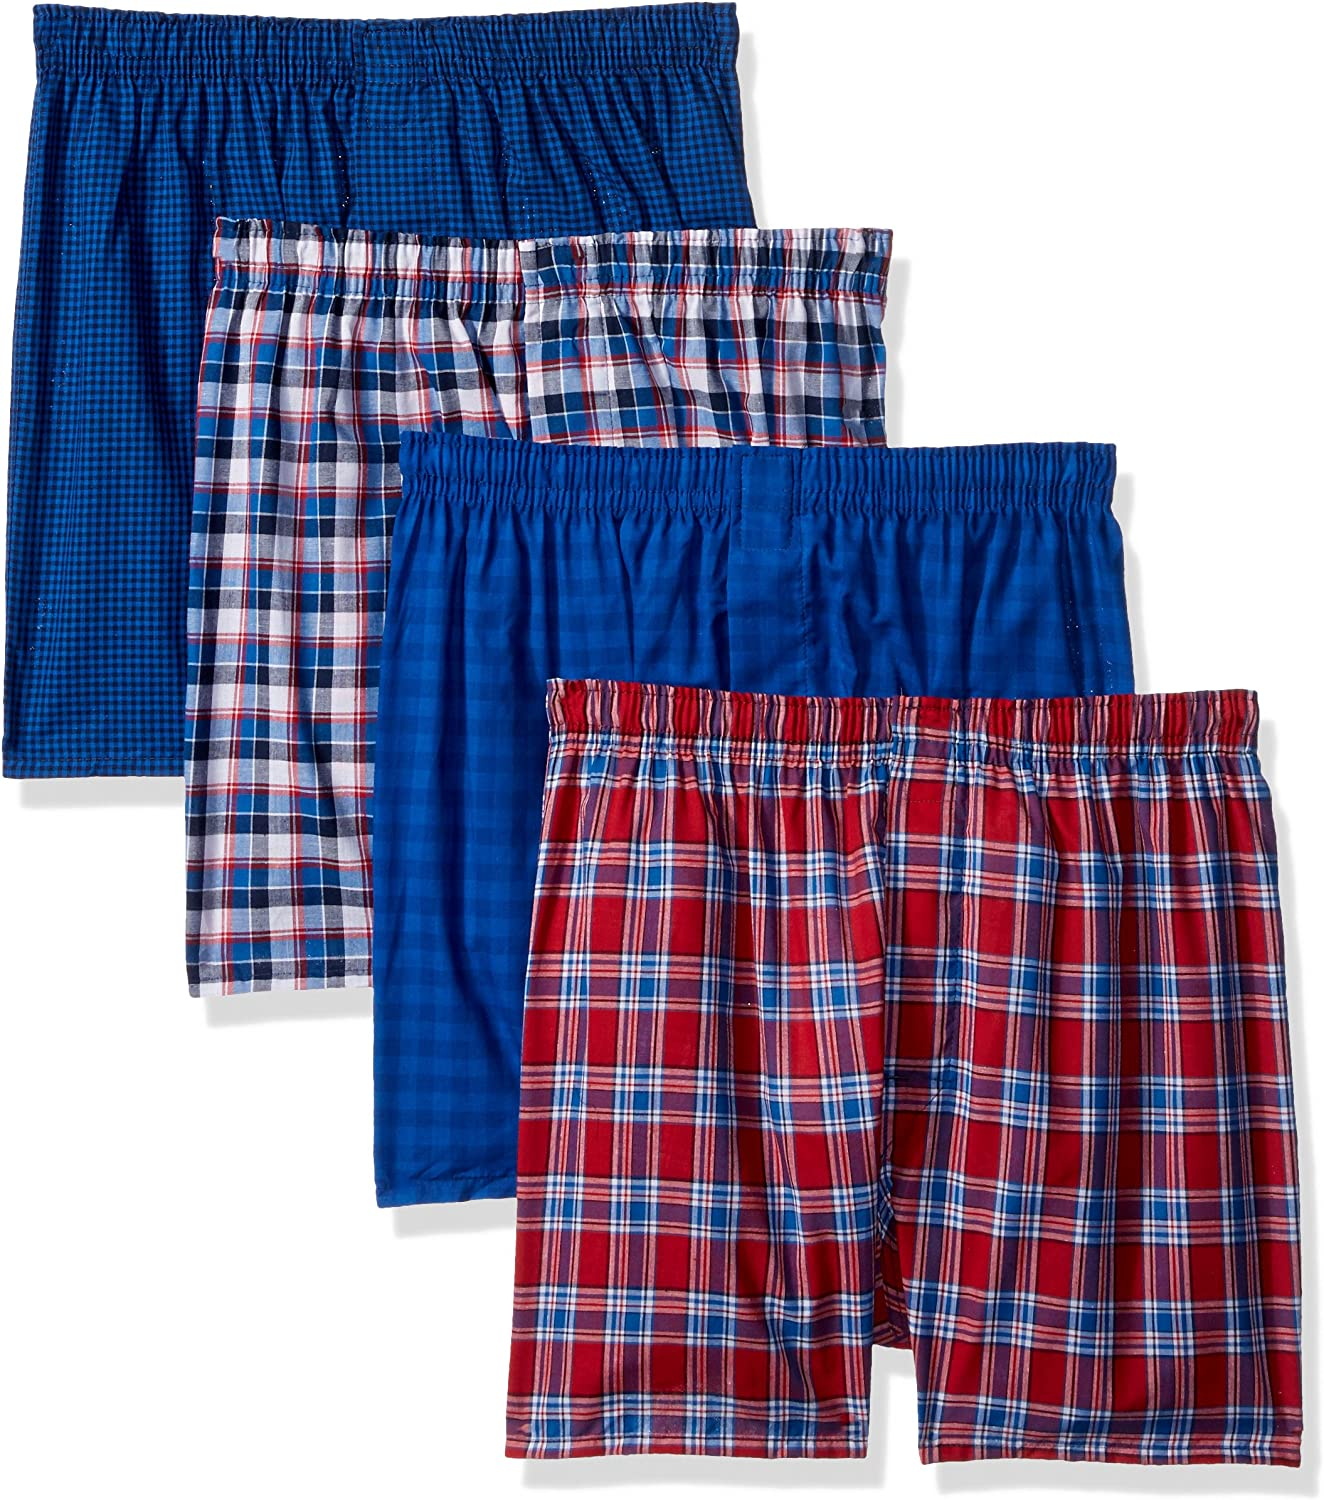 Hanes Men's 4-Pack Comfortblend Woven Boxers with Freshiq